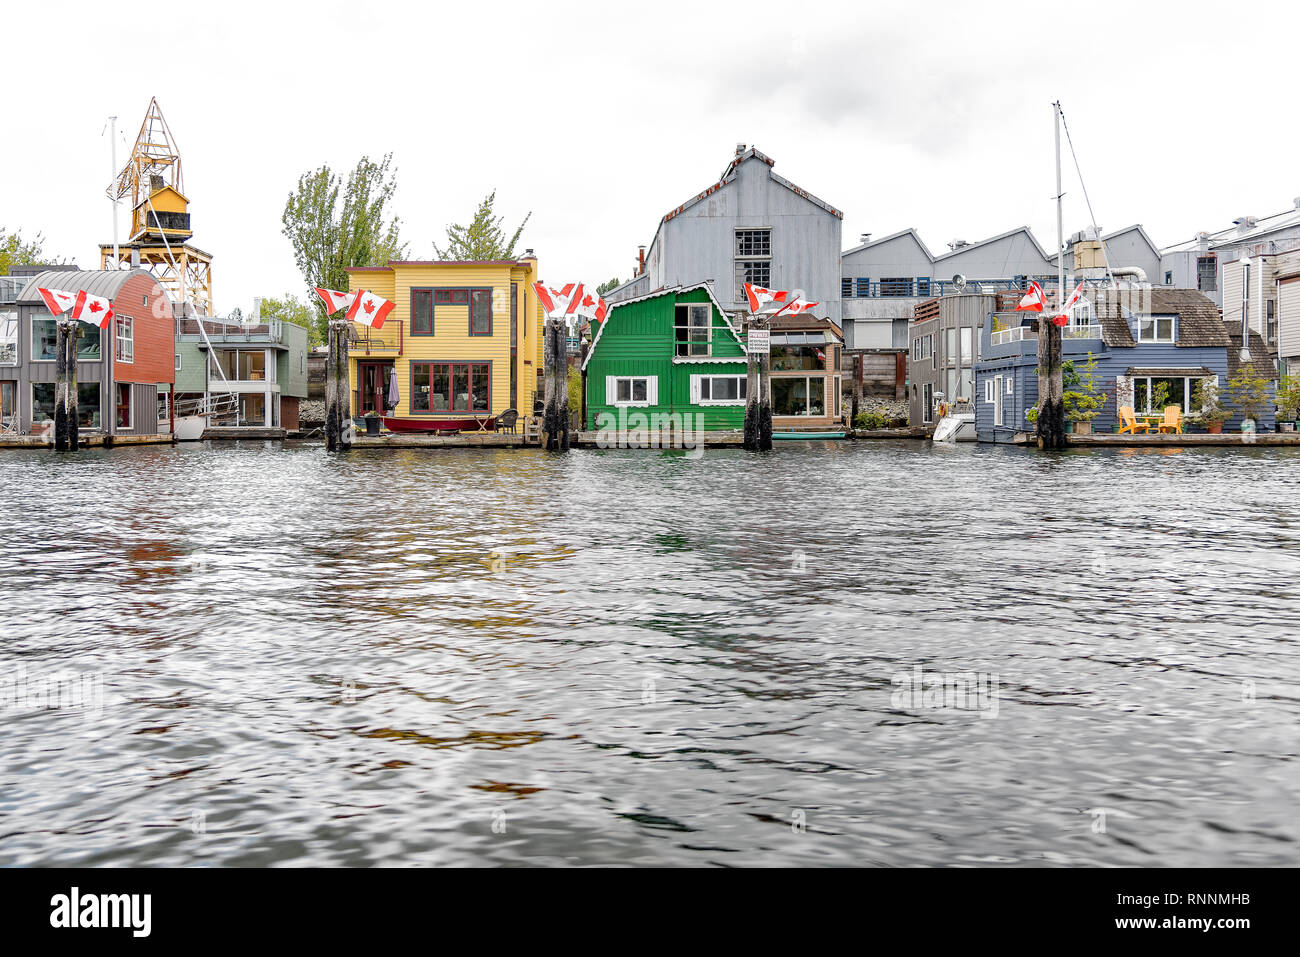 False Creek floating homes, Granville Island, Vancouver, Canada - Stock Image